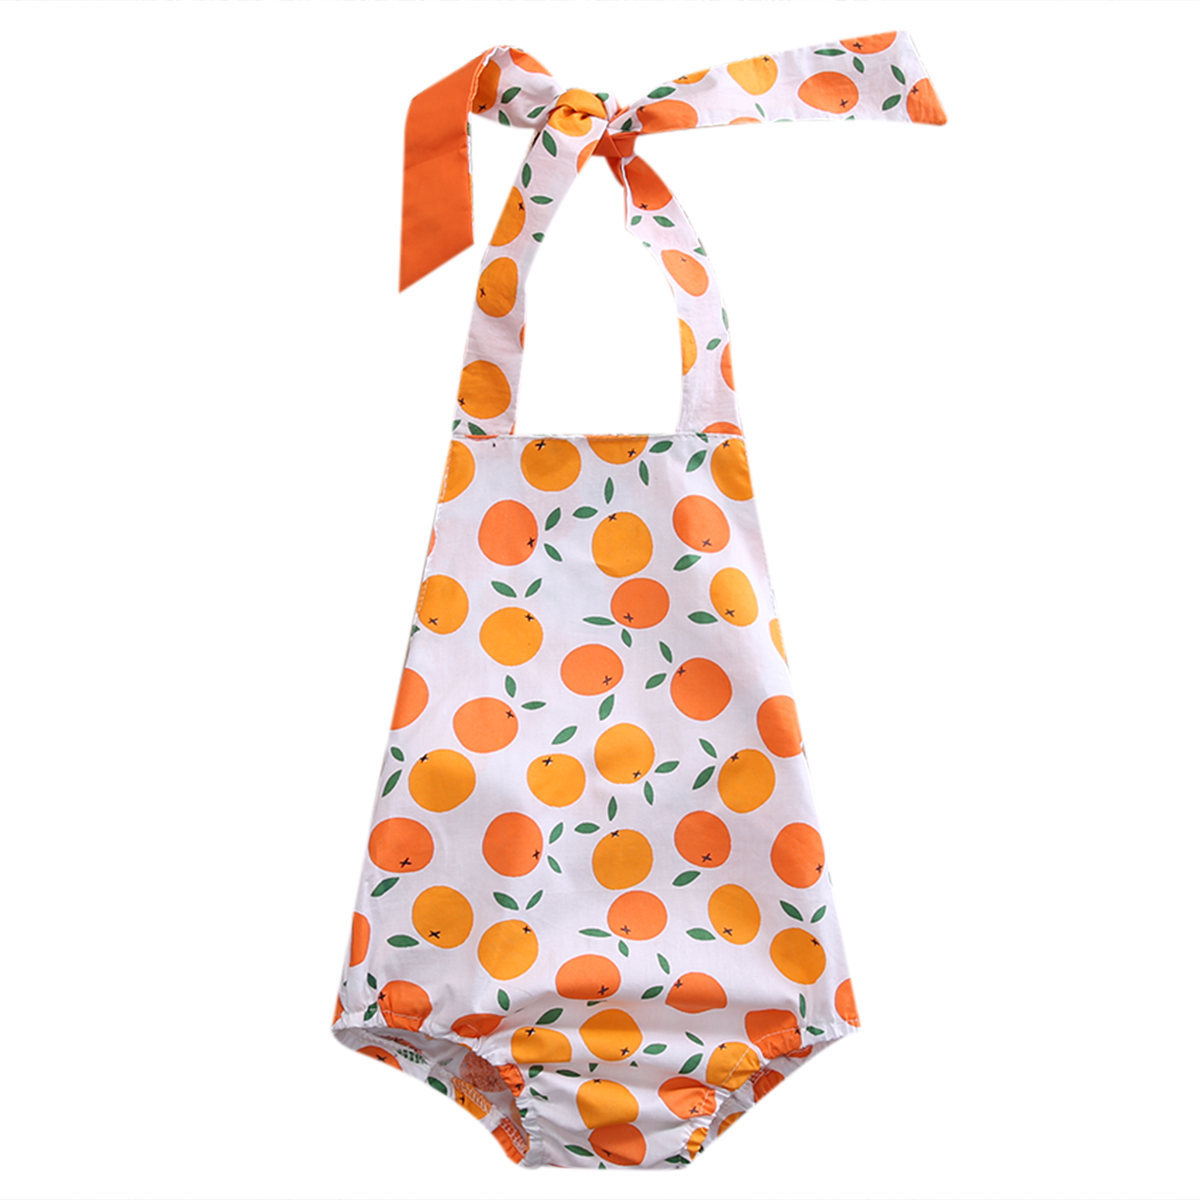 0 24M Babies Oranges Pattern Halter Bodysuits Cute Newborn Toddler Baby Boys Girls Orange Bodysuit Outfits